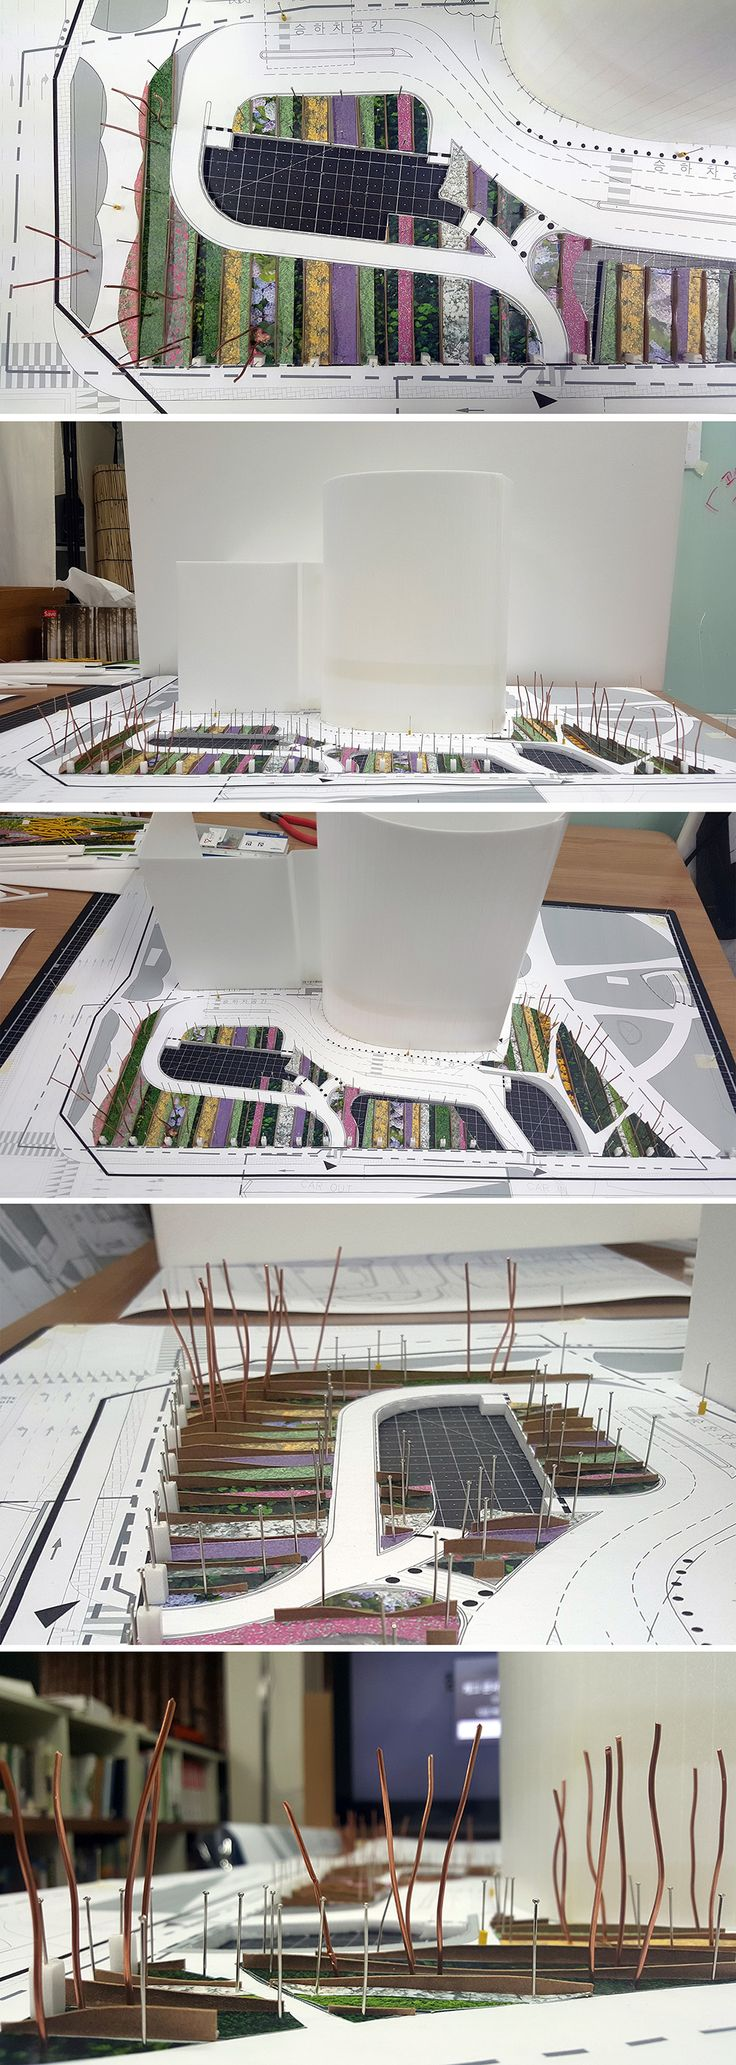 model study for L-Tower in Seoul, 2016 / Designed by Studio101